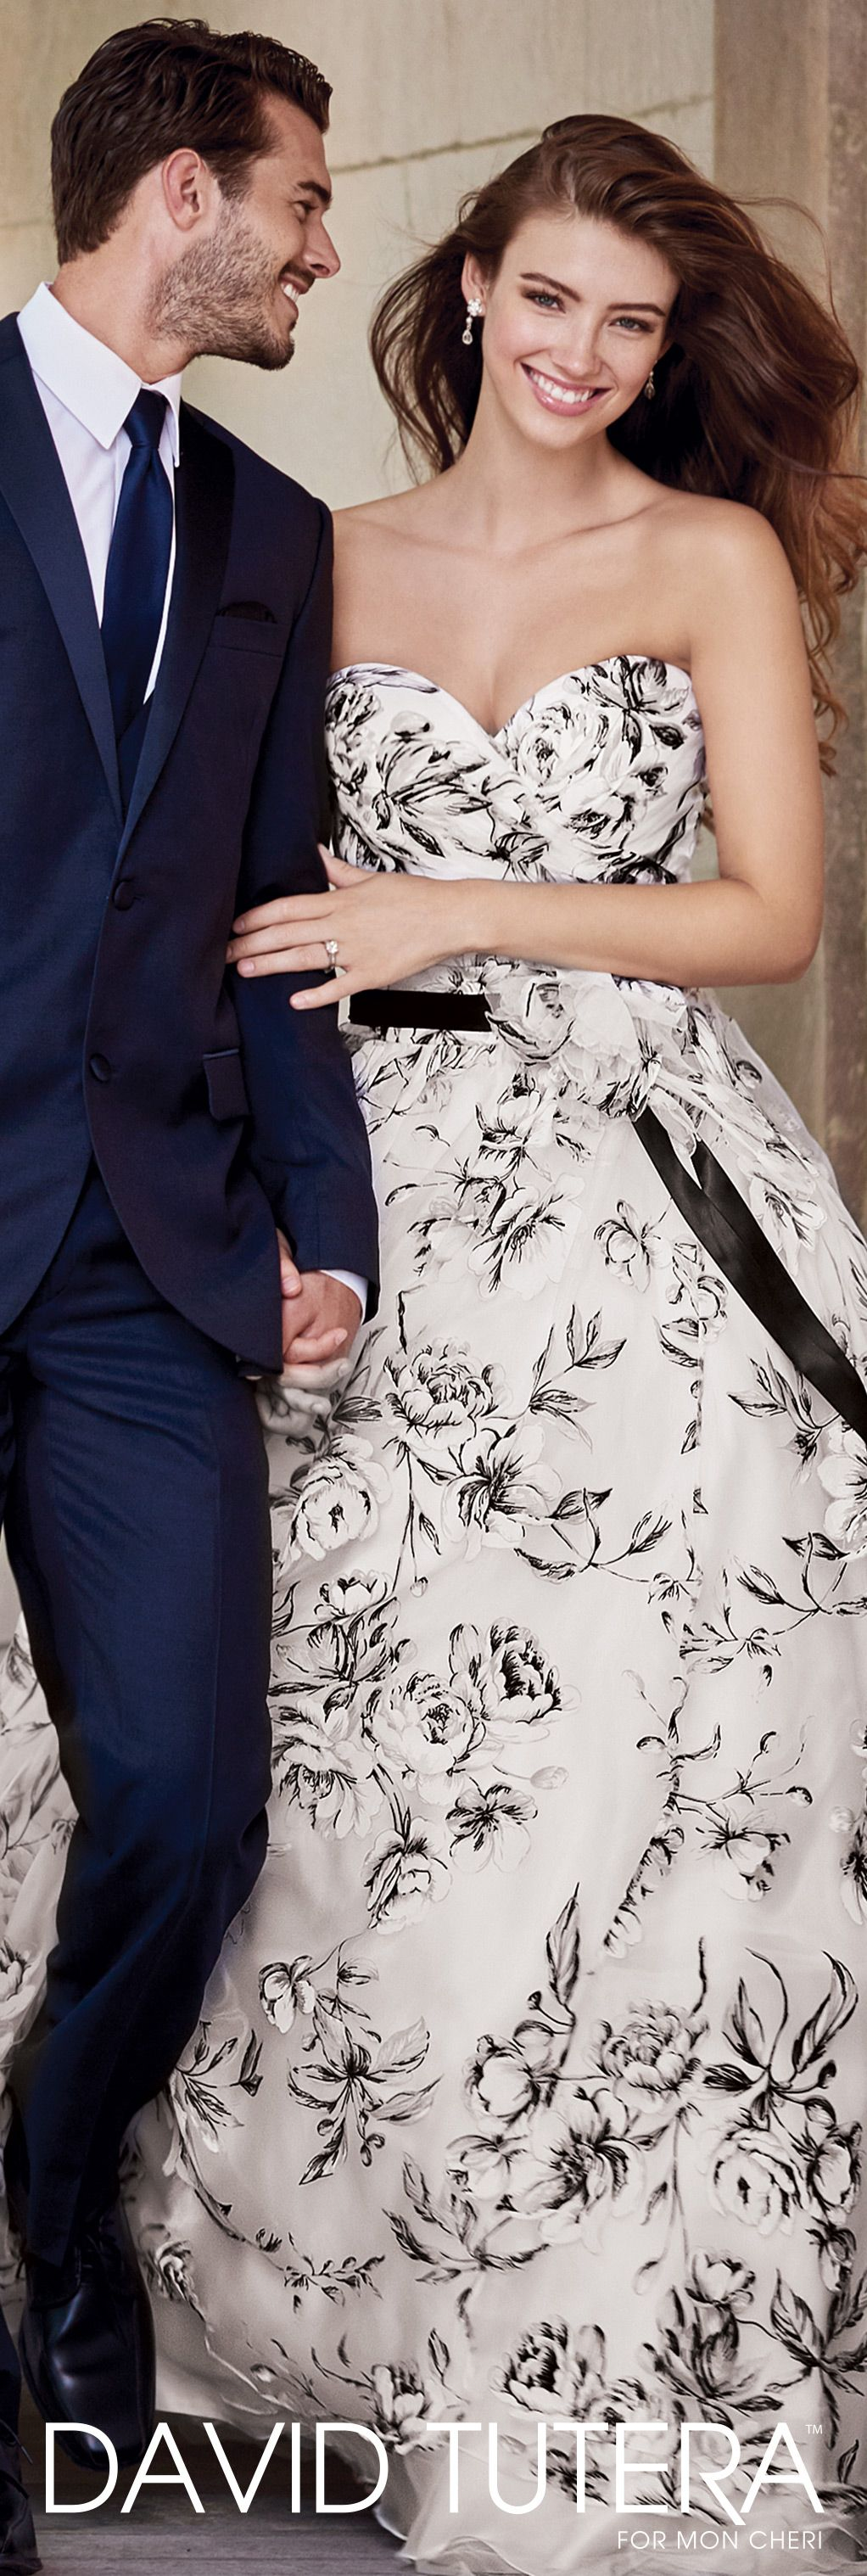 8ddf0d7b13f David Tutera for Mon Cheri Spring 2017 Collection - Style No. 117283  Orabelle - strapless black and white floral wedding dress with satin ribbon  flowered ...